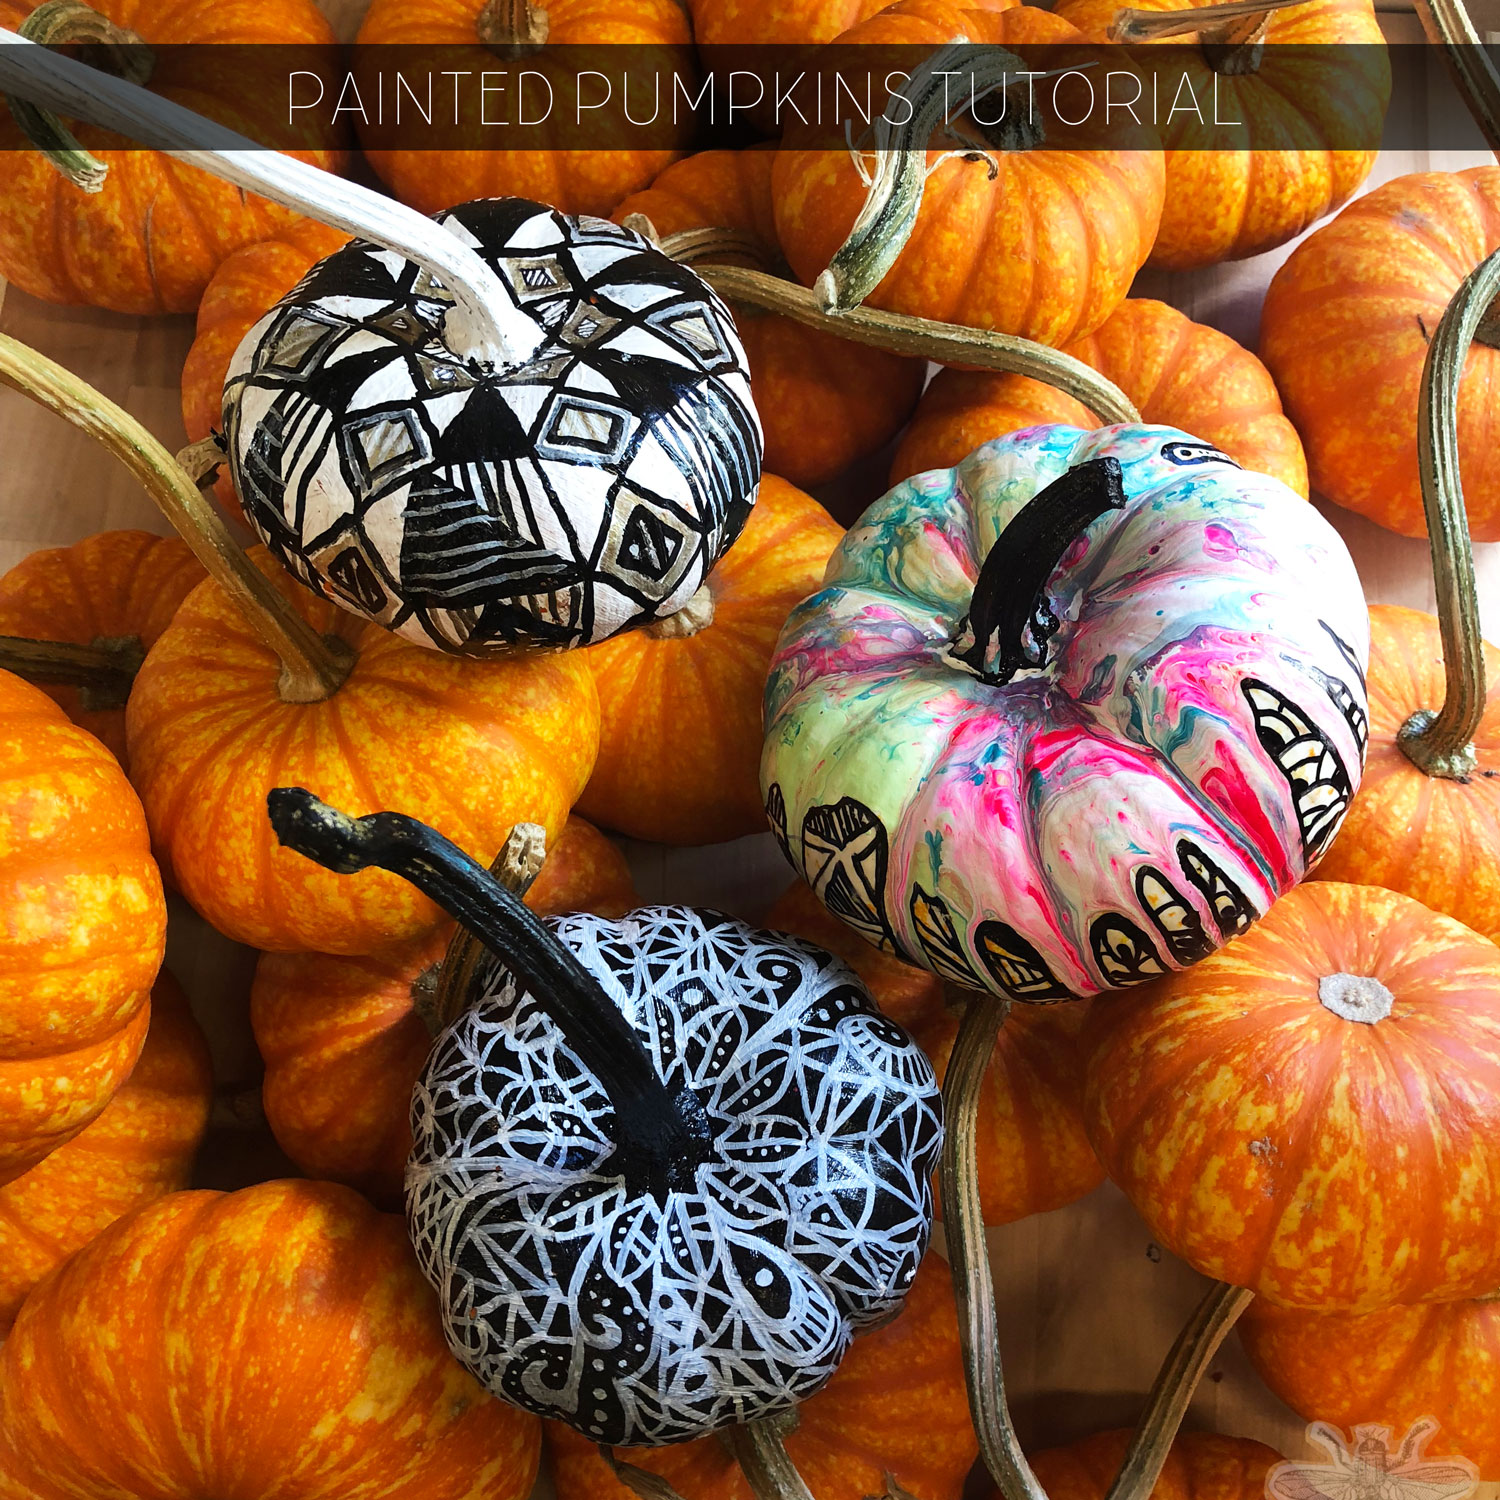 A tutorial on how to artistically paint pumpkins.